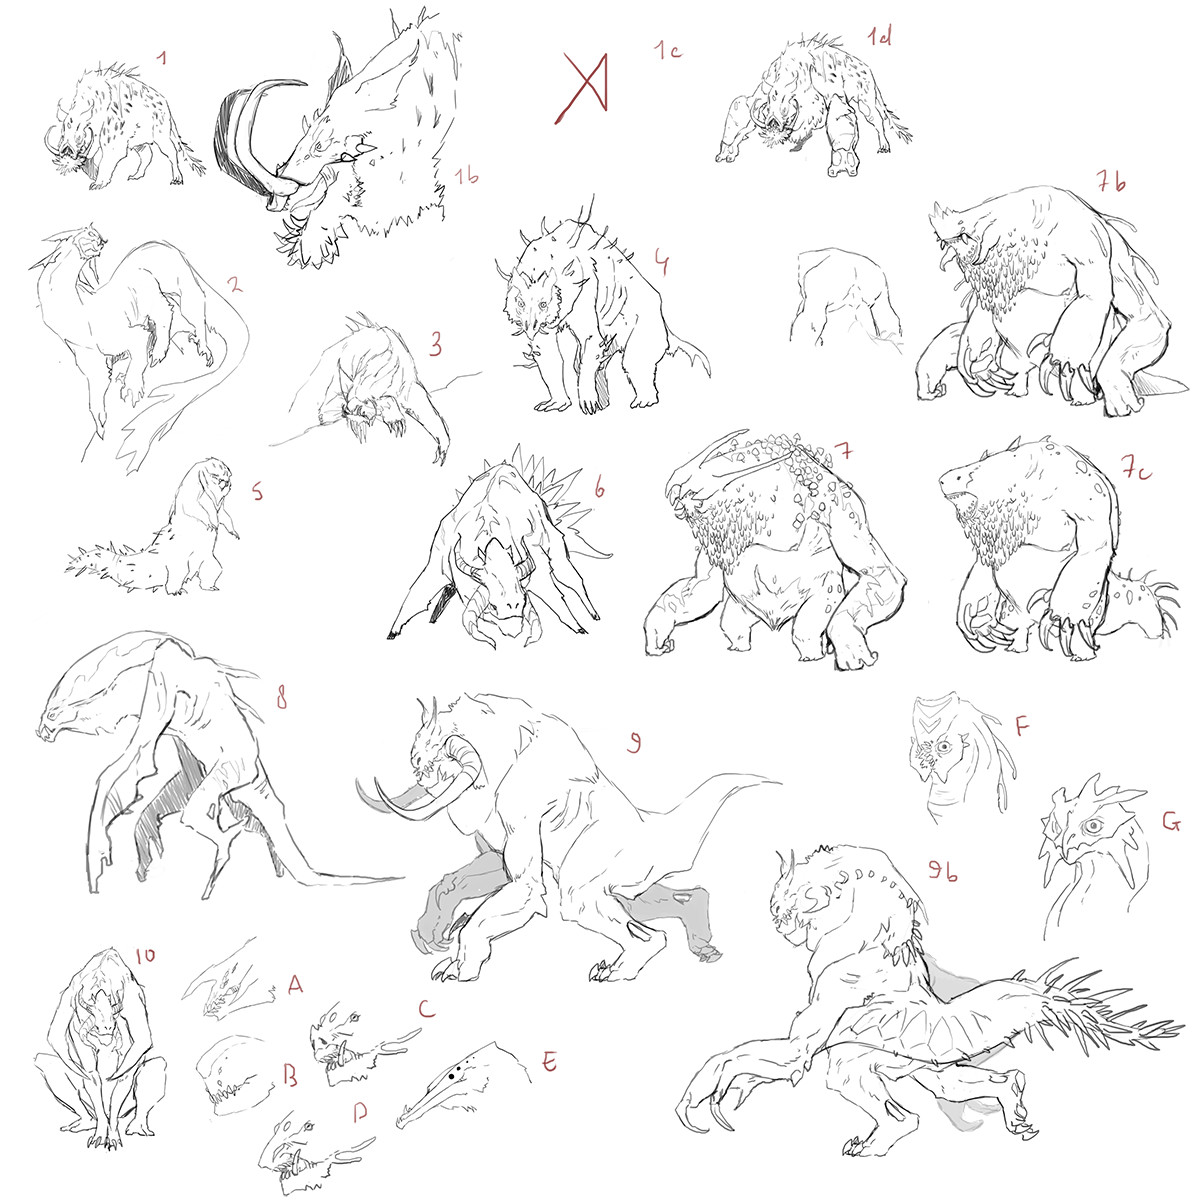 first sketches for the monster design